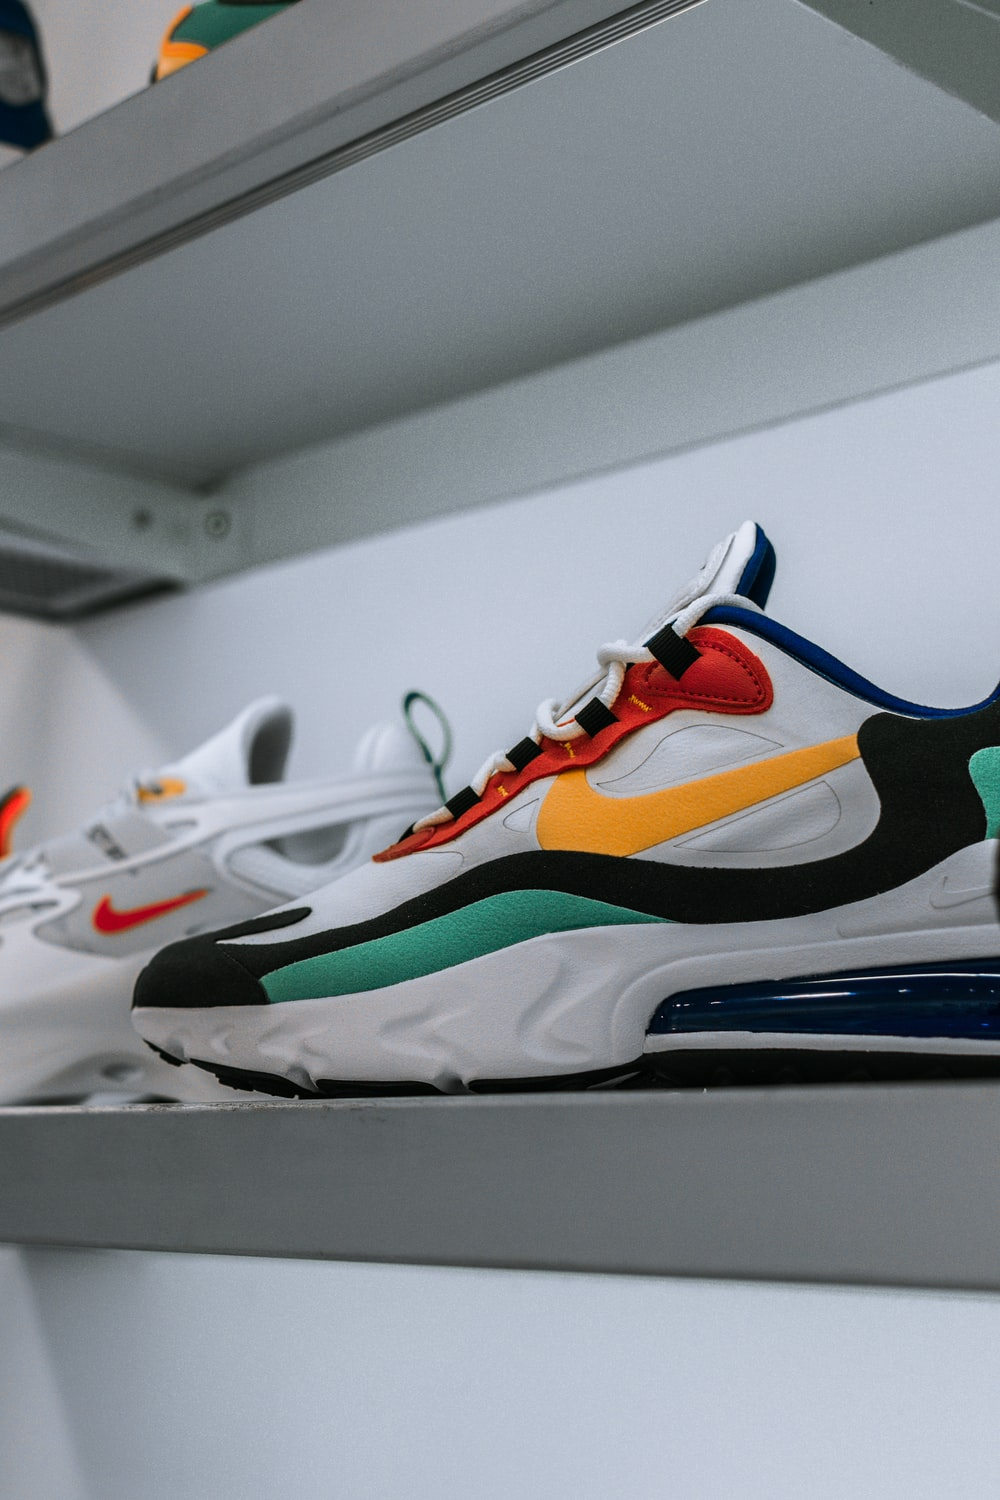 white and multicolored Nike Air Max shoe on shelf